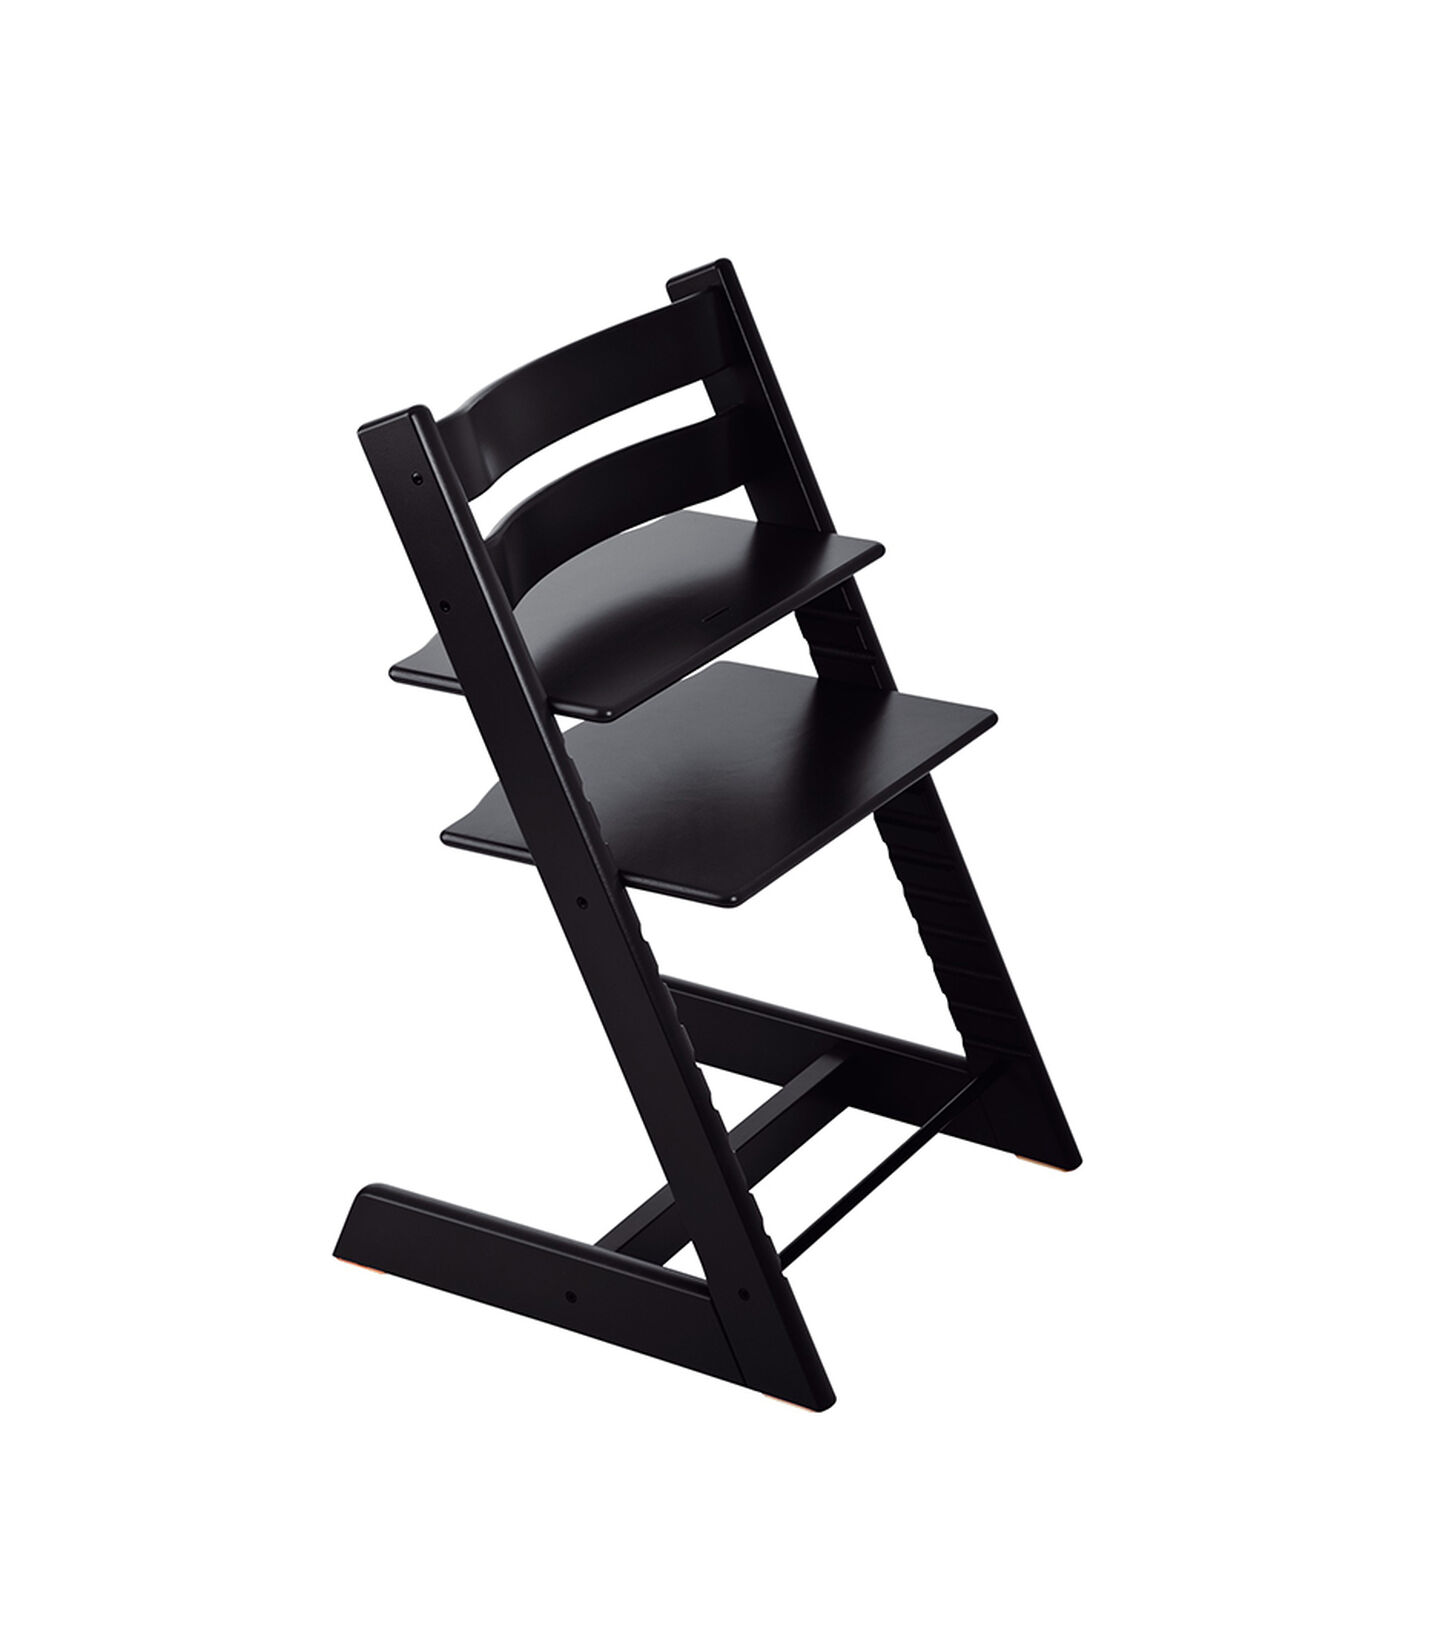 Tripp Trapp® Chair Black, Black, mainview